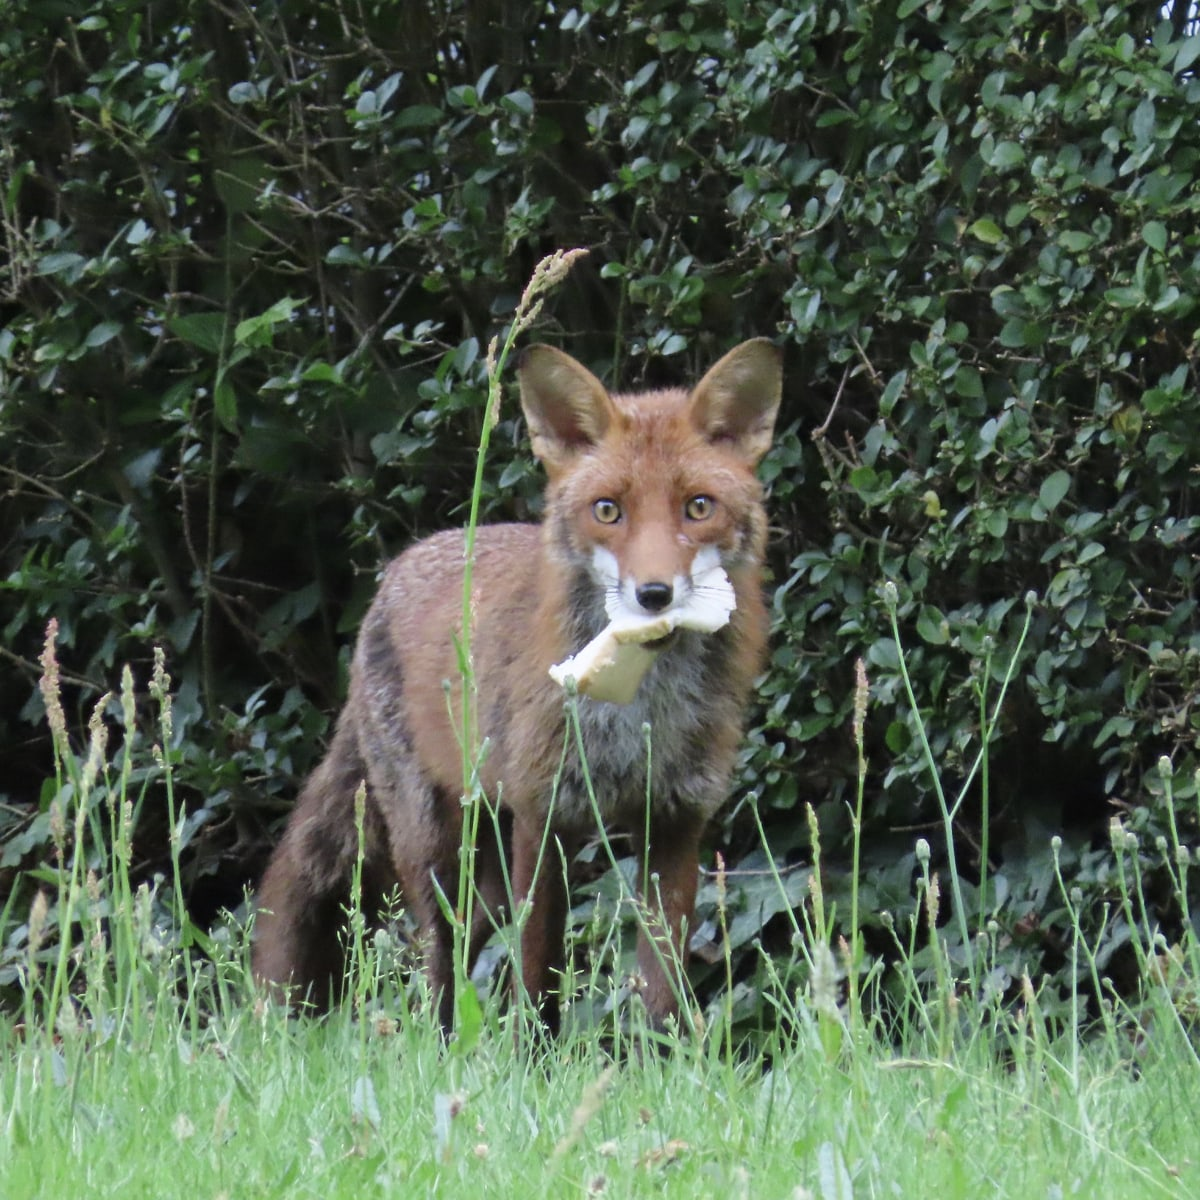 Fox with piece of bread in mouth